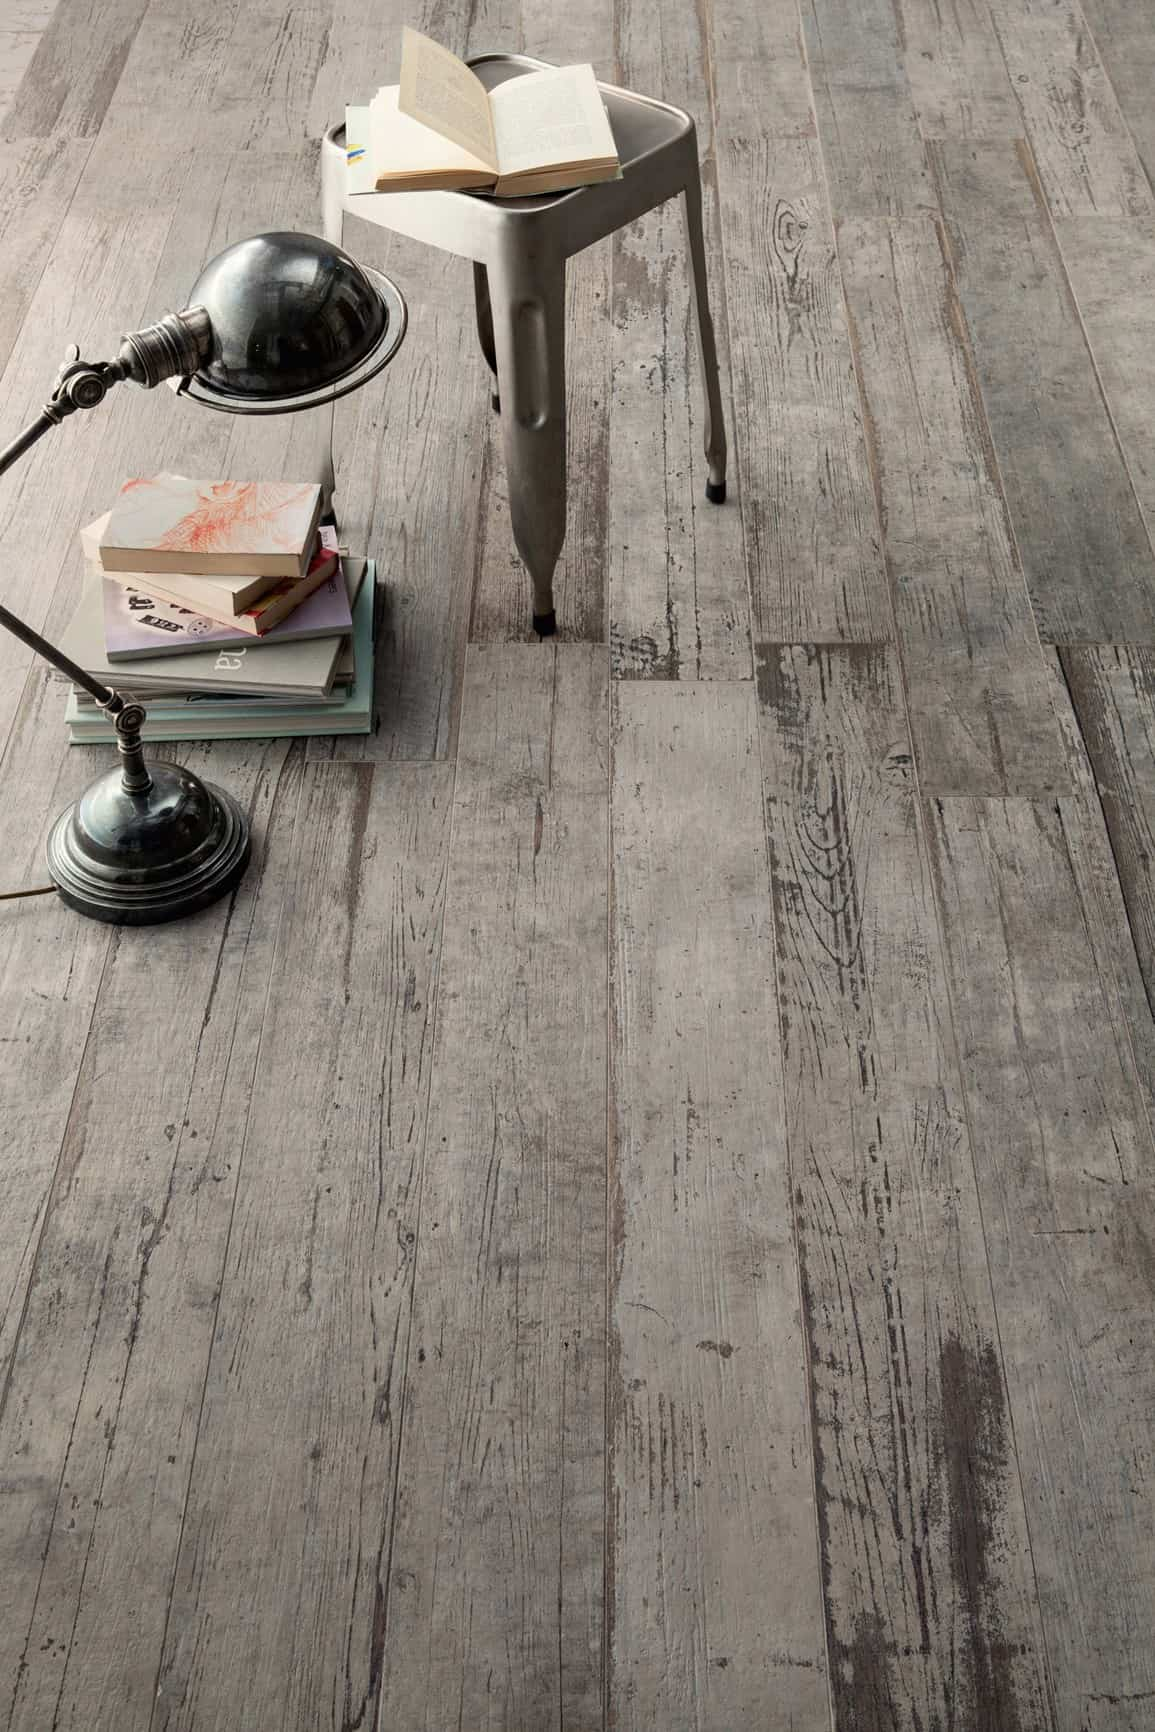 surprising tiles that look like wood. View in gallery astonishing porcelain tile looking like real weathered wood  Amazing Distressed Wood Looking Tile